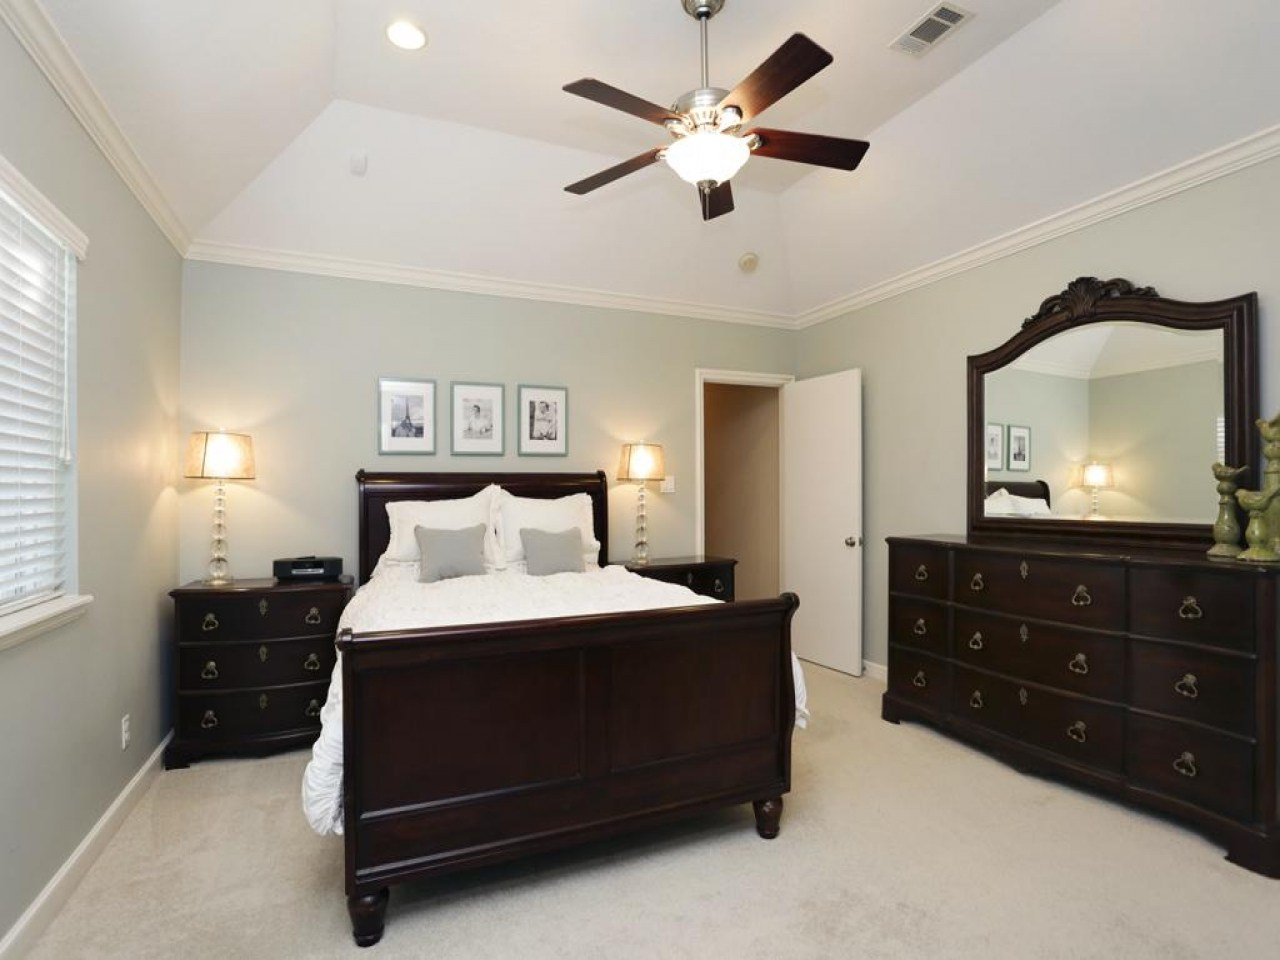 master bedroom ceiling fans 25 methods to save your 16000 | master bedroom ceiling fans photo 13